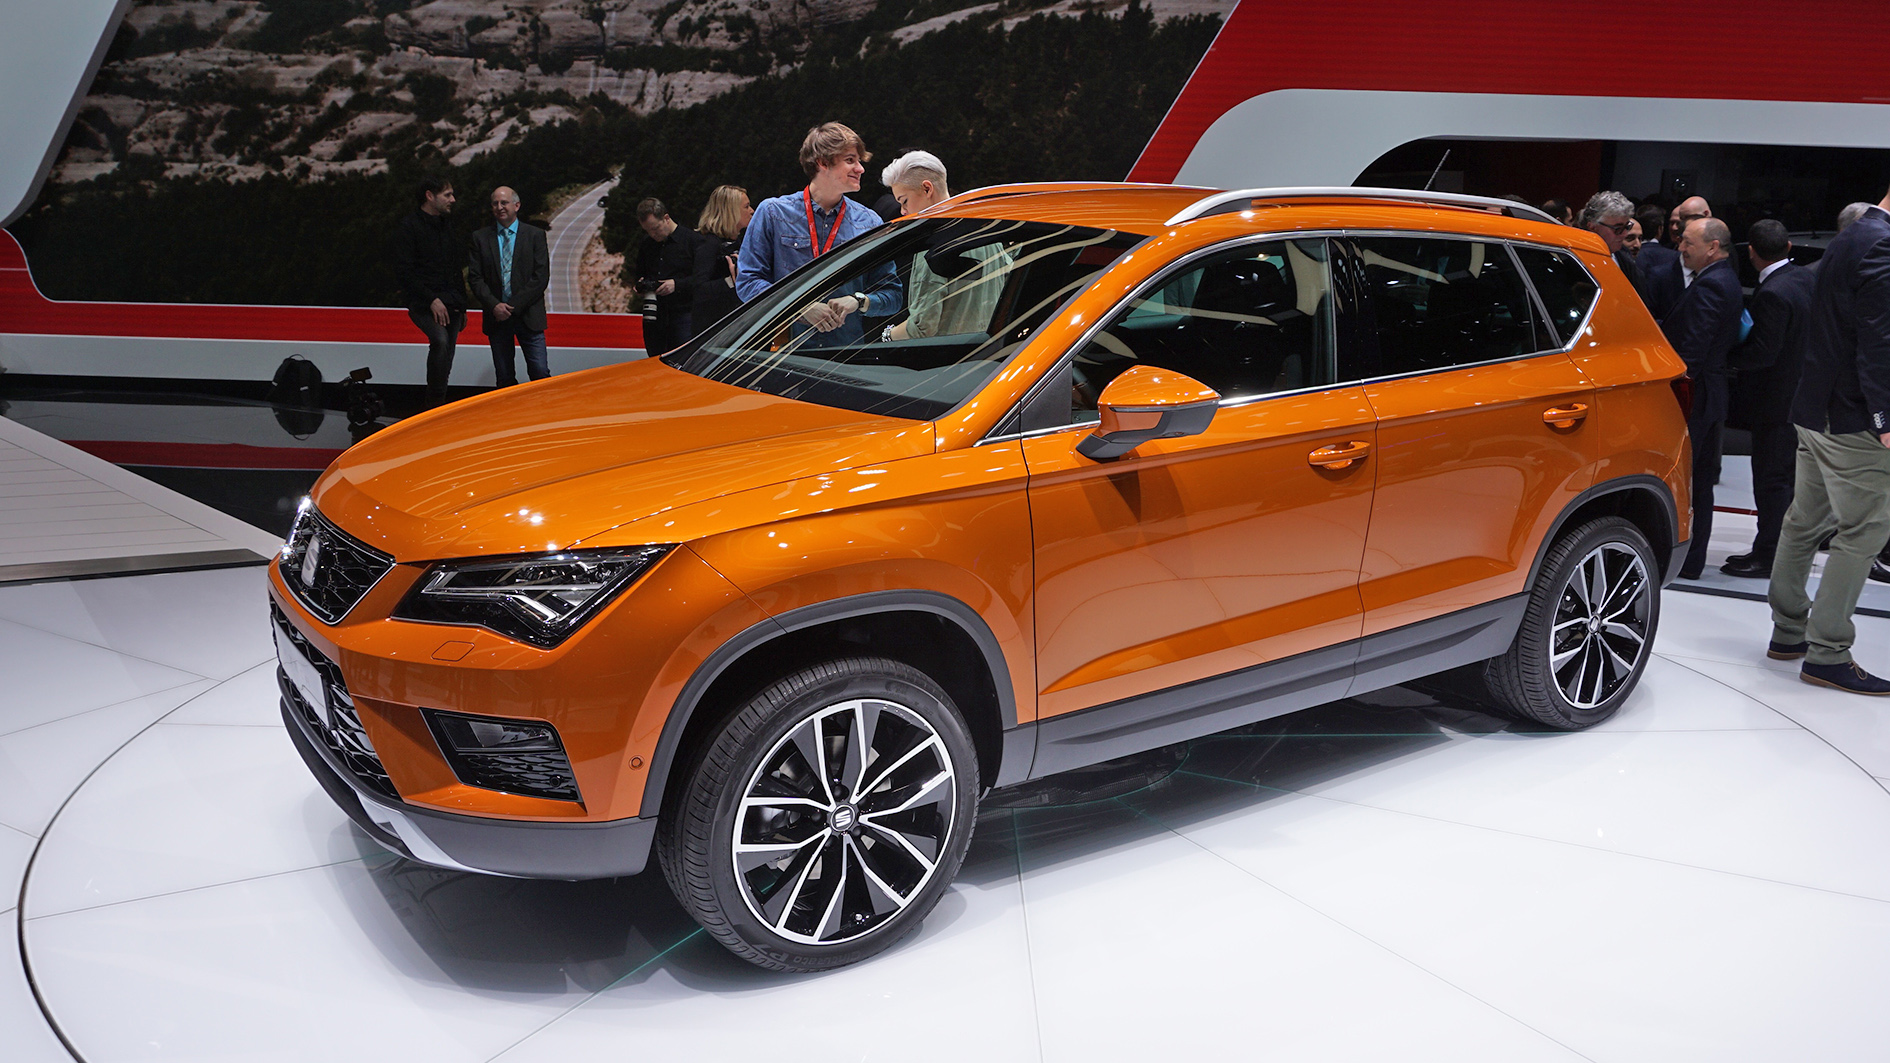 genf 2016 seat ateca weltpremiere seats erstes suv. Black Bedroom Furniture Sets. Home Design Ideas